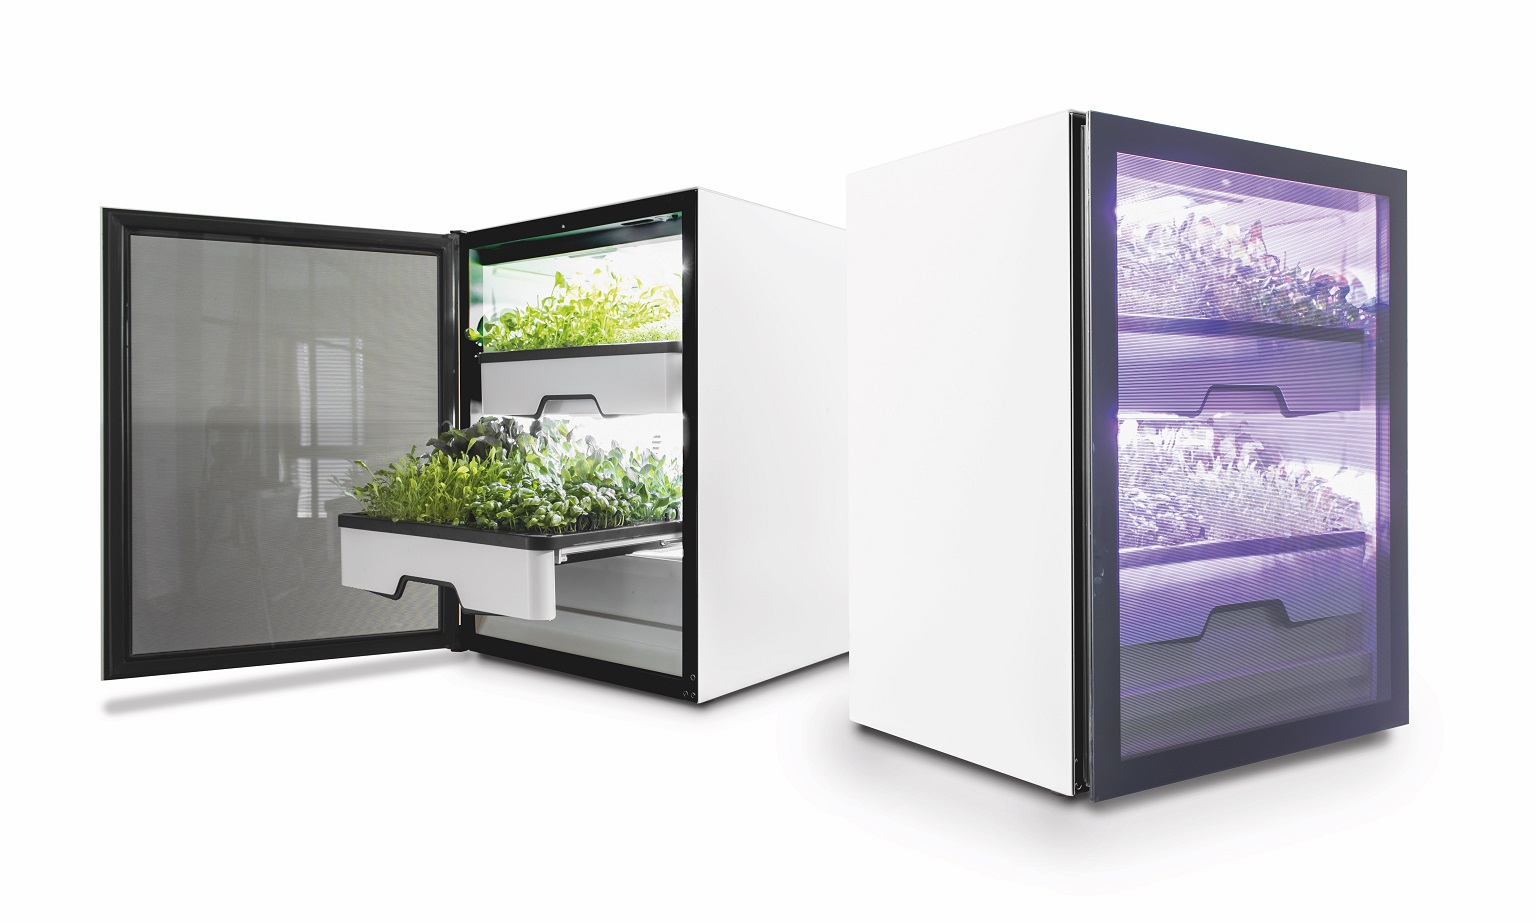 Vertical Farming OEM